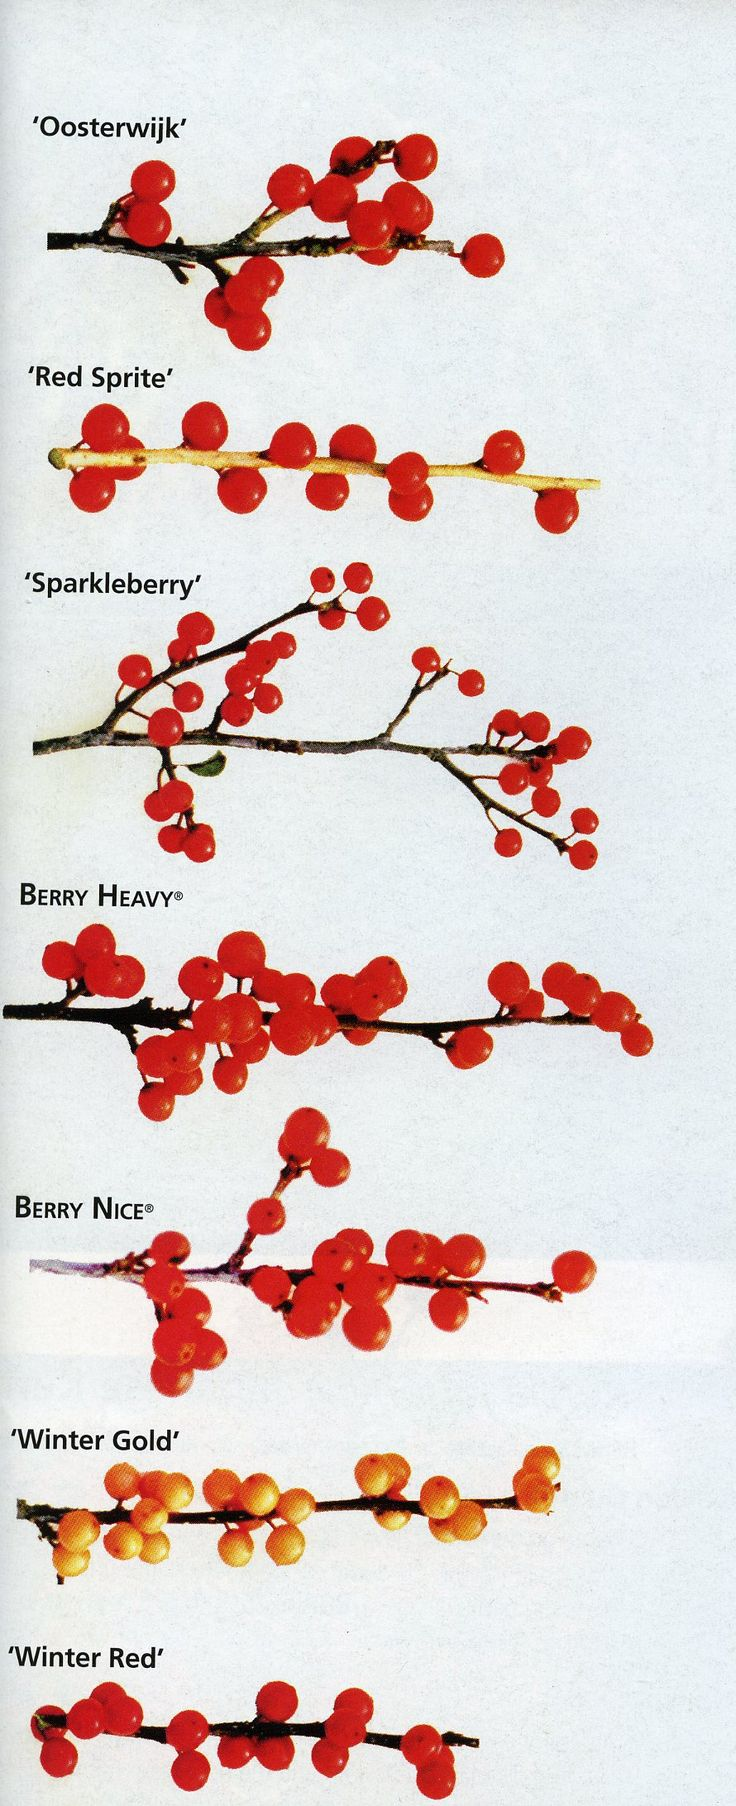 ilex verticillata comparison - Needs male pollinator, Red Sprite is short 3-4', Oostewijk has long lasting berries